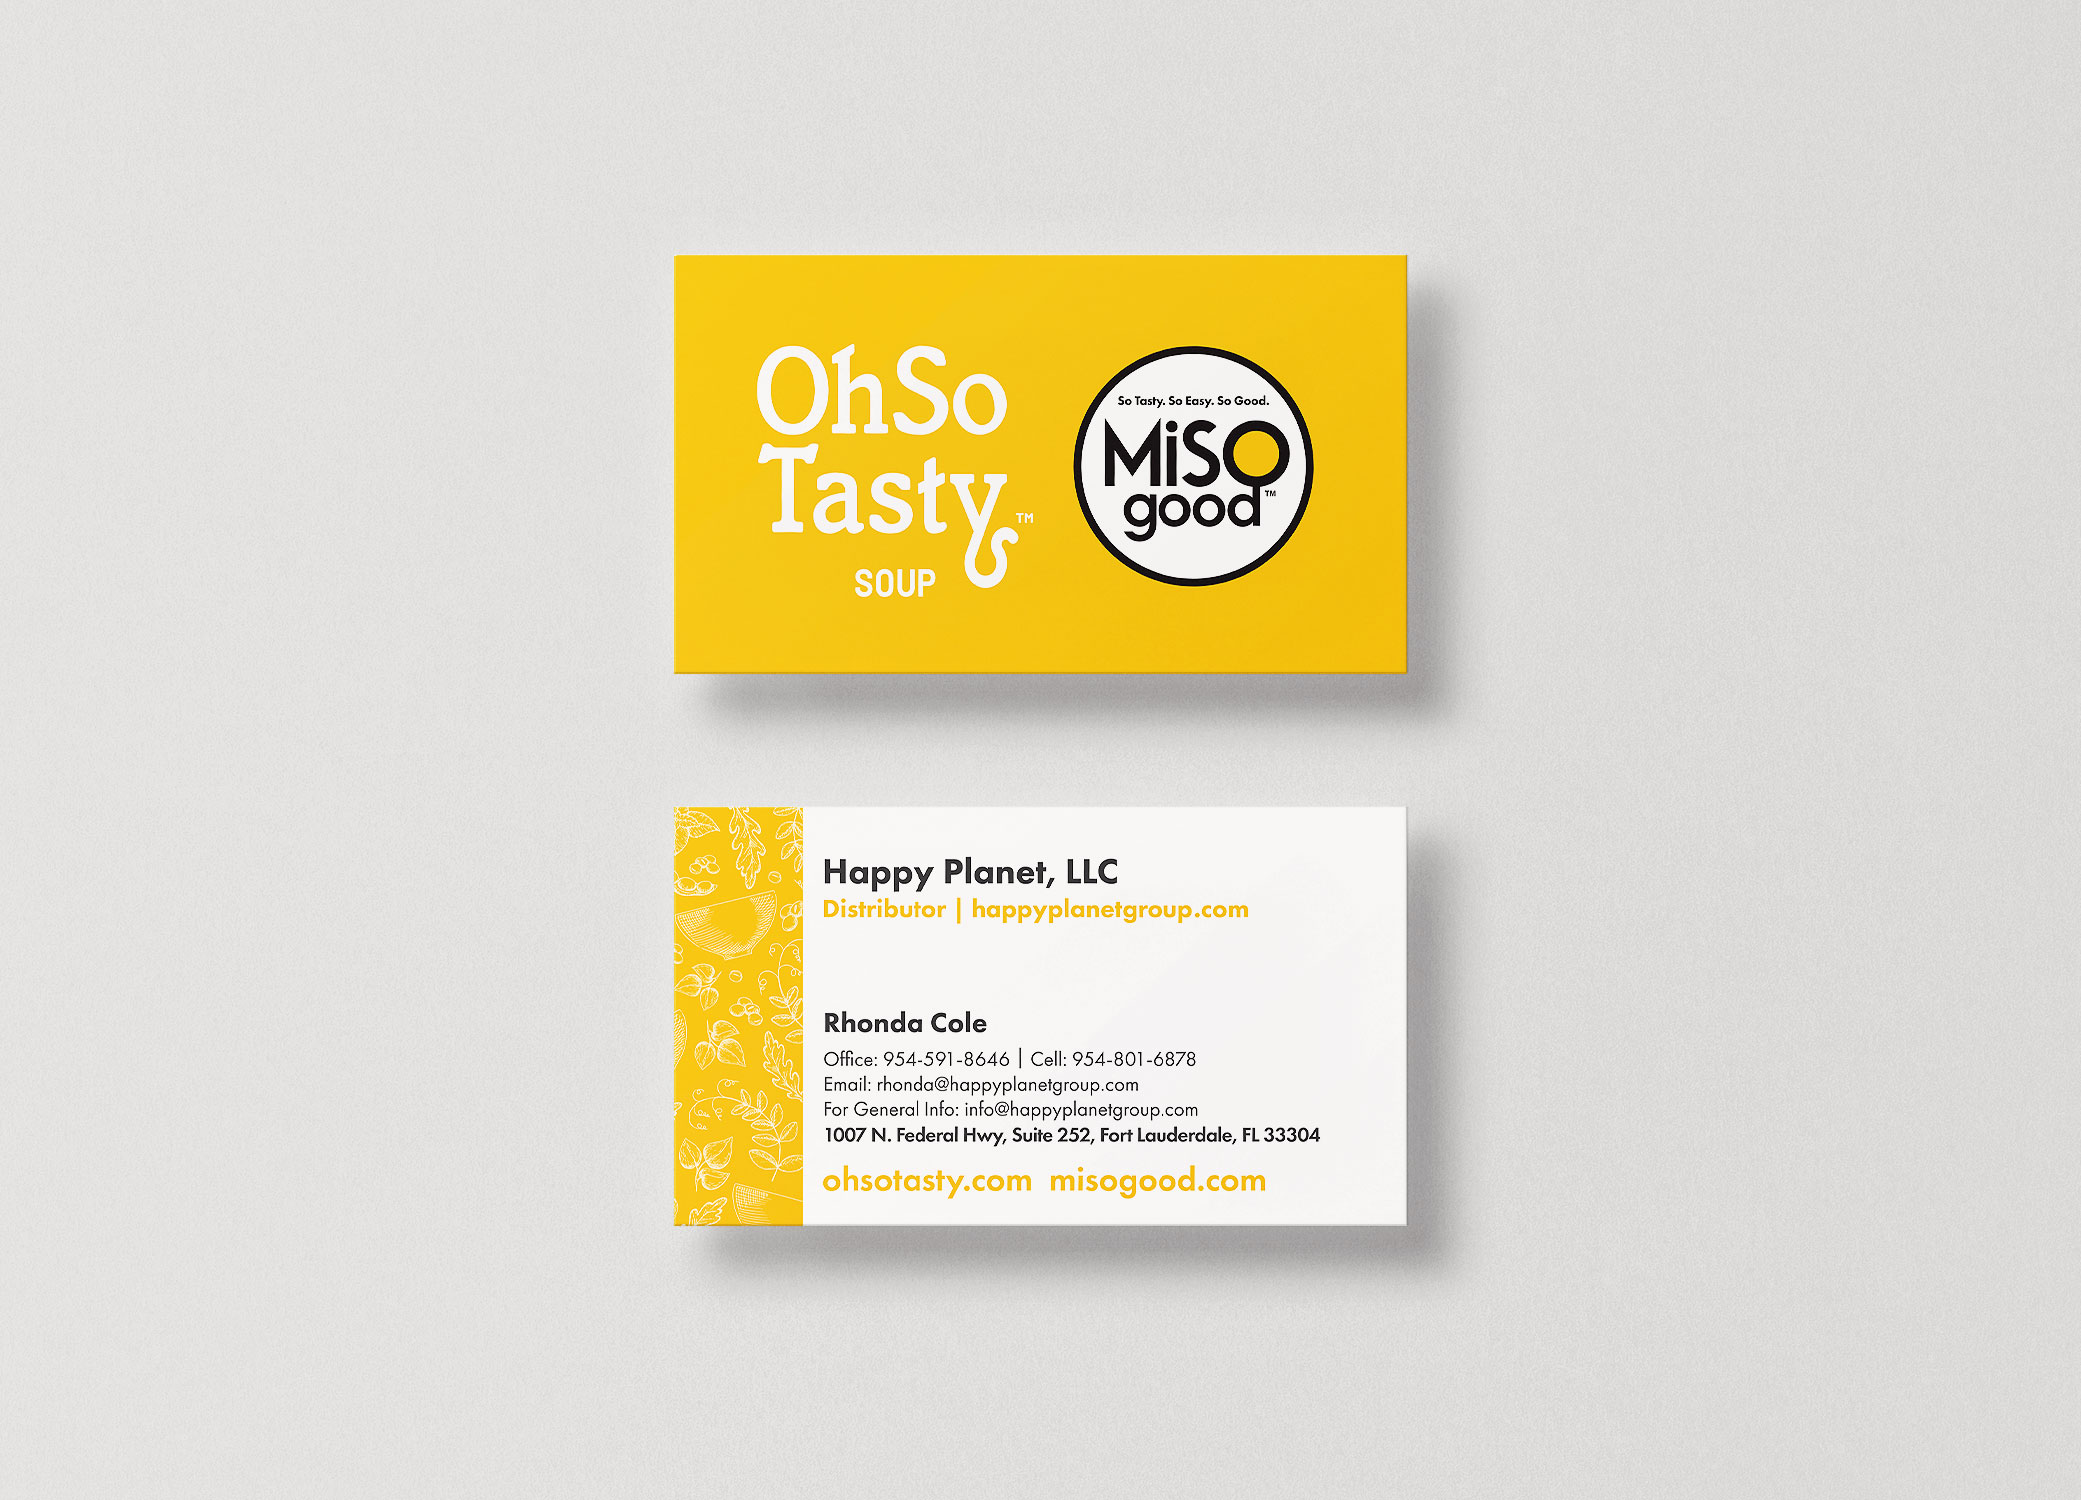 MiSOgood yellow and white business cards arranged in stacks to show front and back design.